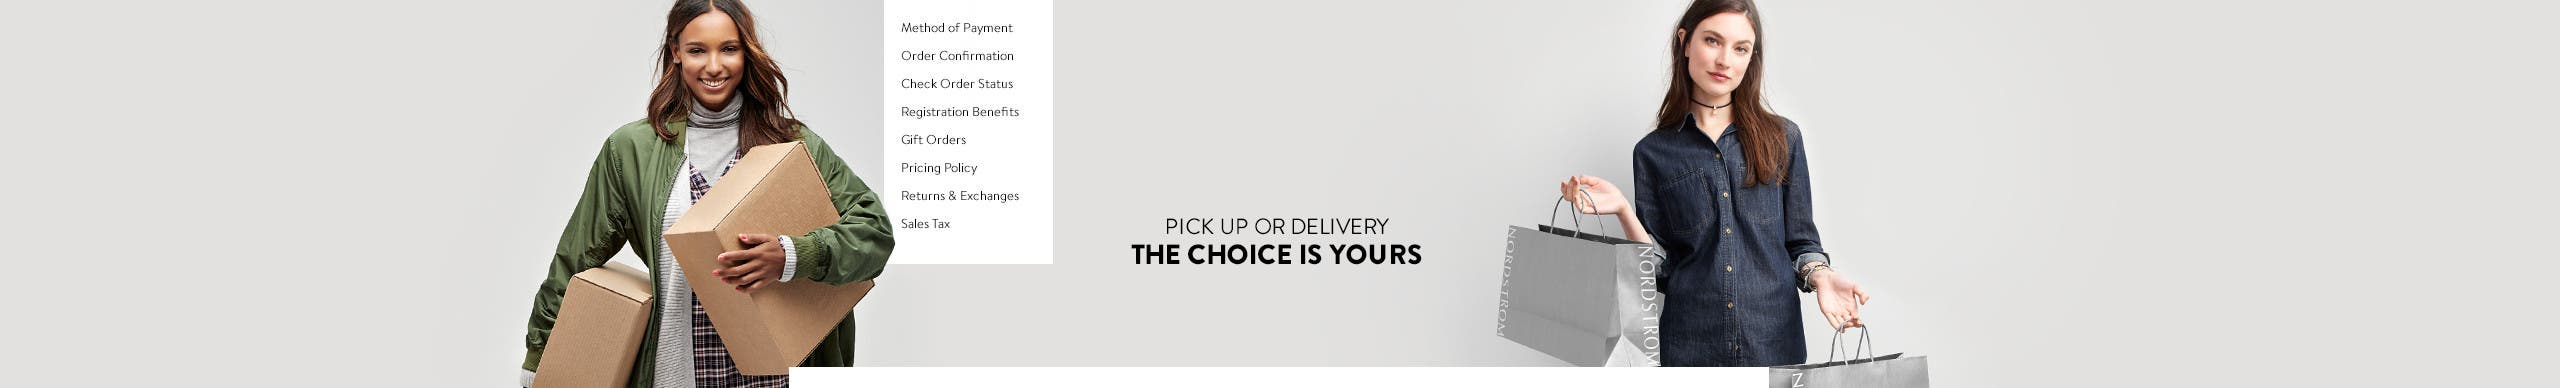 Pick Up or Delivery. The Choice Is Yours.